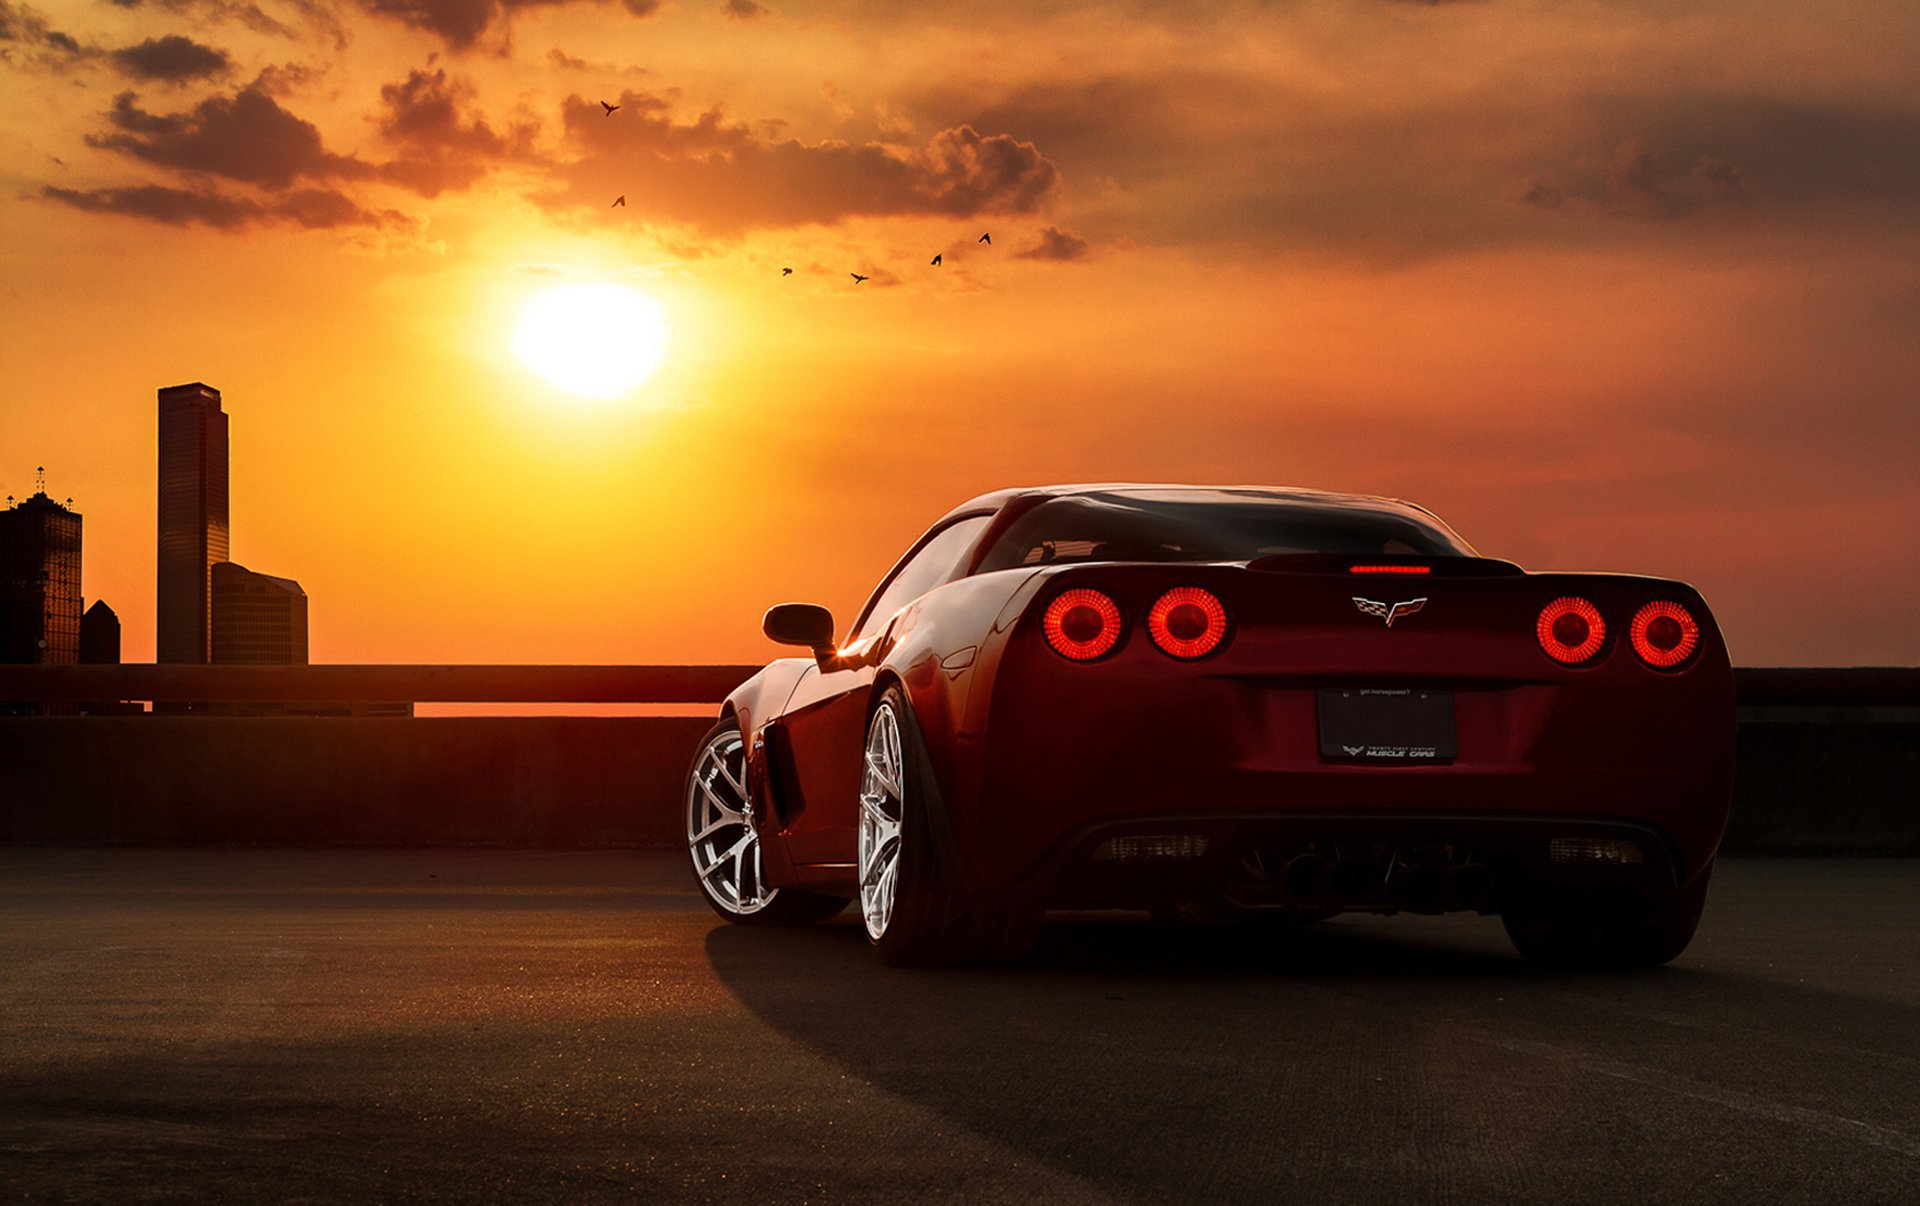 Image: Chevrolet, corvette, tuning, clouds, sunset